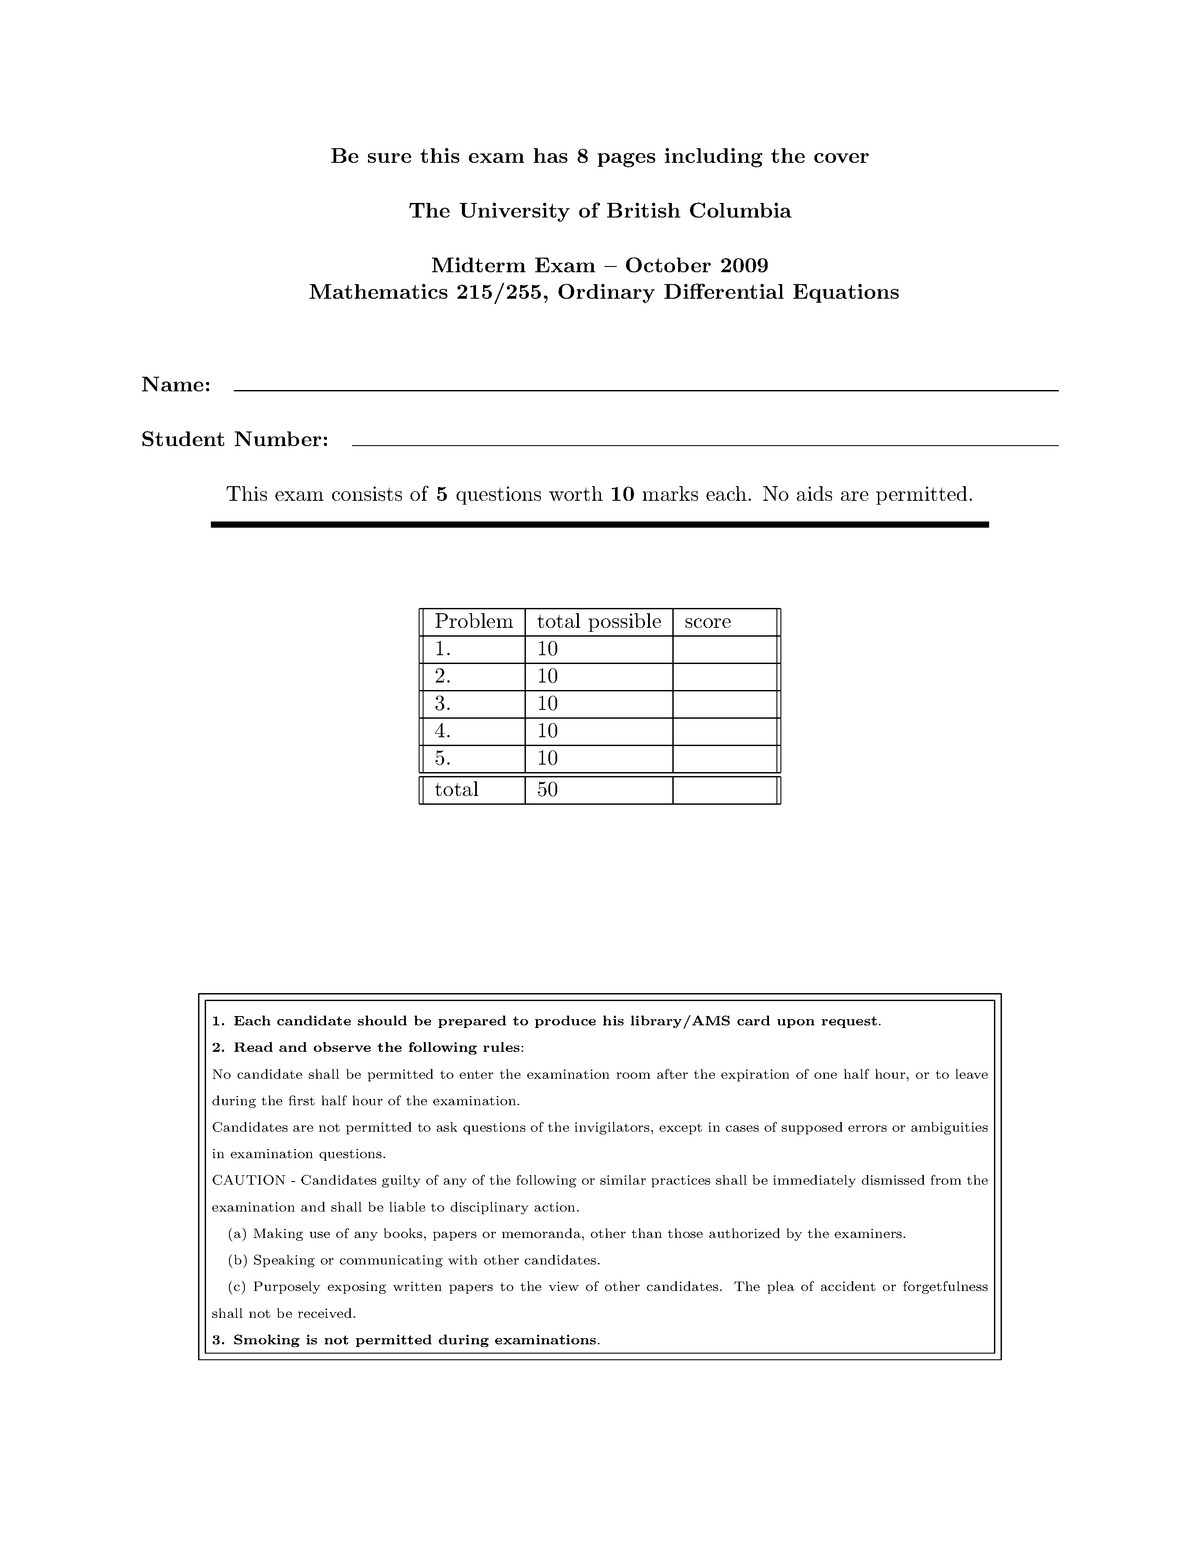 Exam October 2009, Questions and answers - Mid-term 1